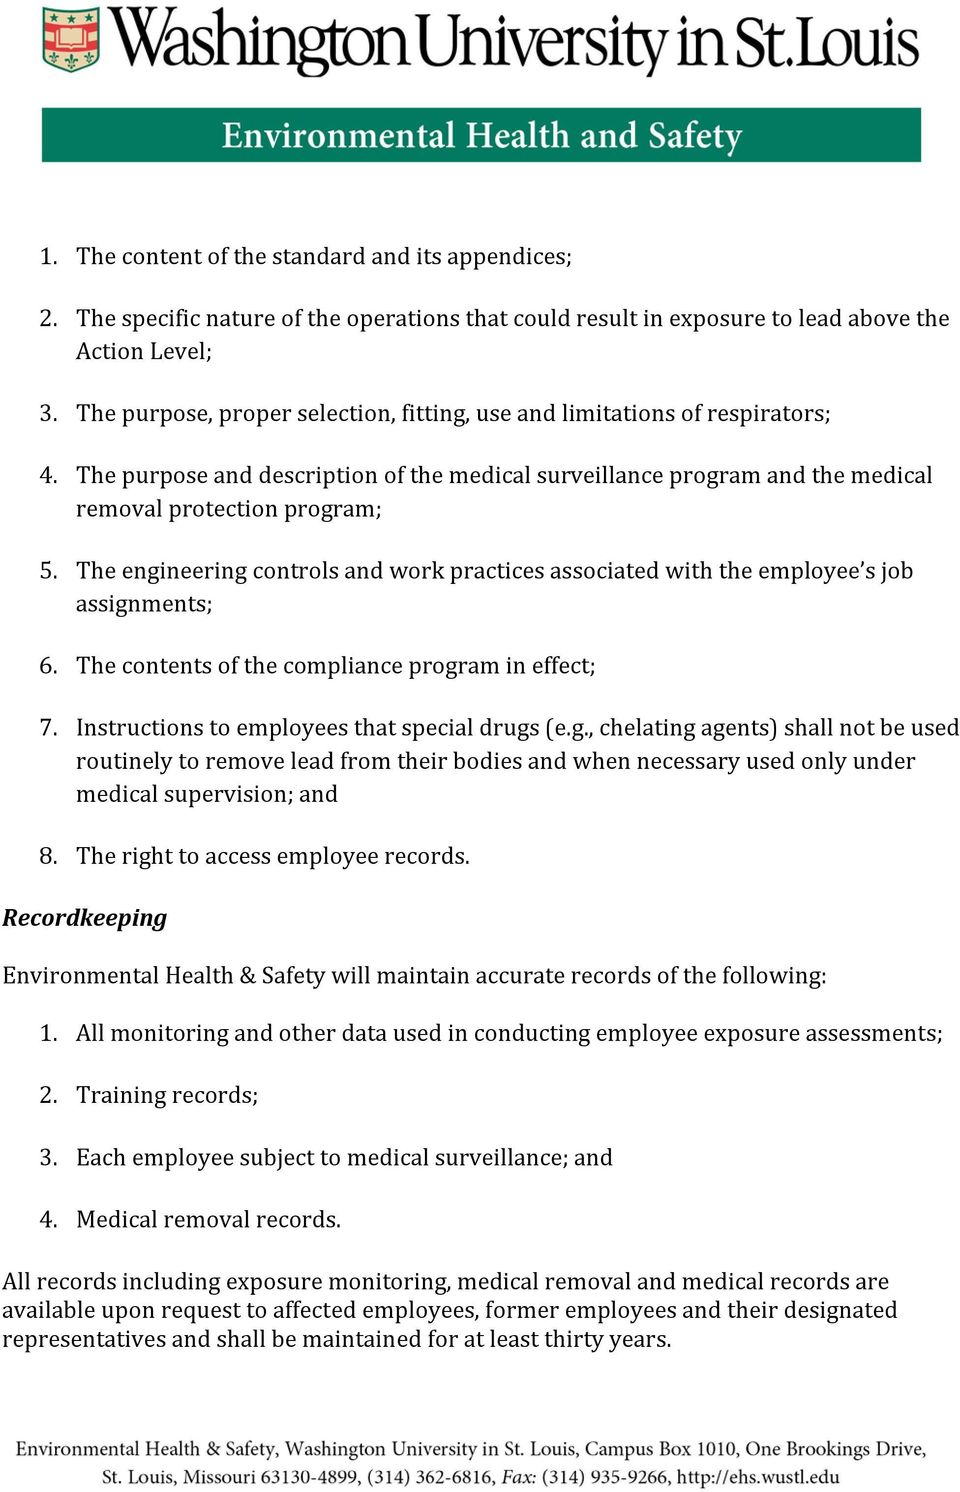 The engineering controls and work practices associated with the employee s job assignments; 6. The contents of the compliance program in effect; 7. Instructions to employees that special drugs (e.g., chelating agents) shall not be used routinely to remove lead from their bodies and when necessary used only under medical supervision; and 8.